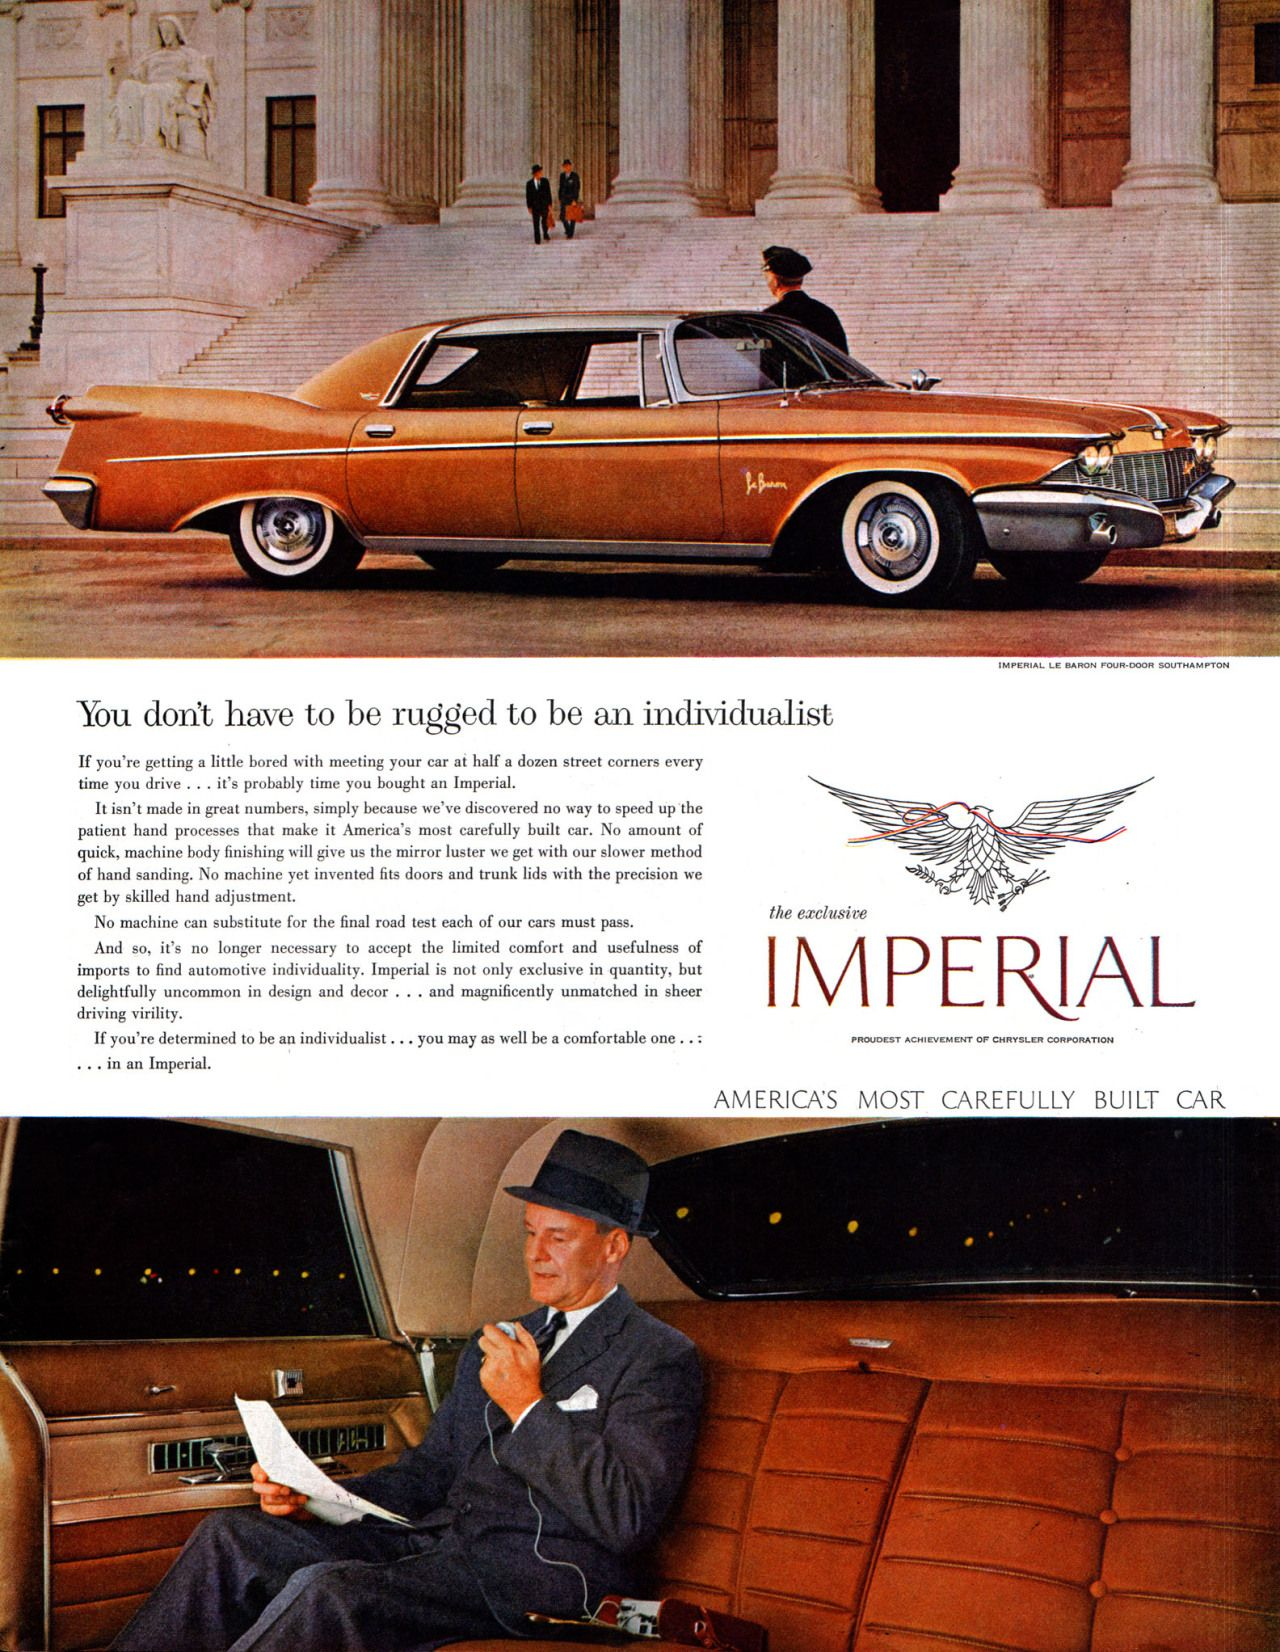 1960 Imperial ad | Vintage auto advertising | Pinterest | Cars ...